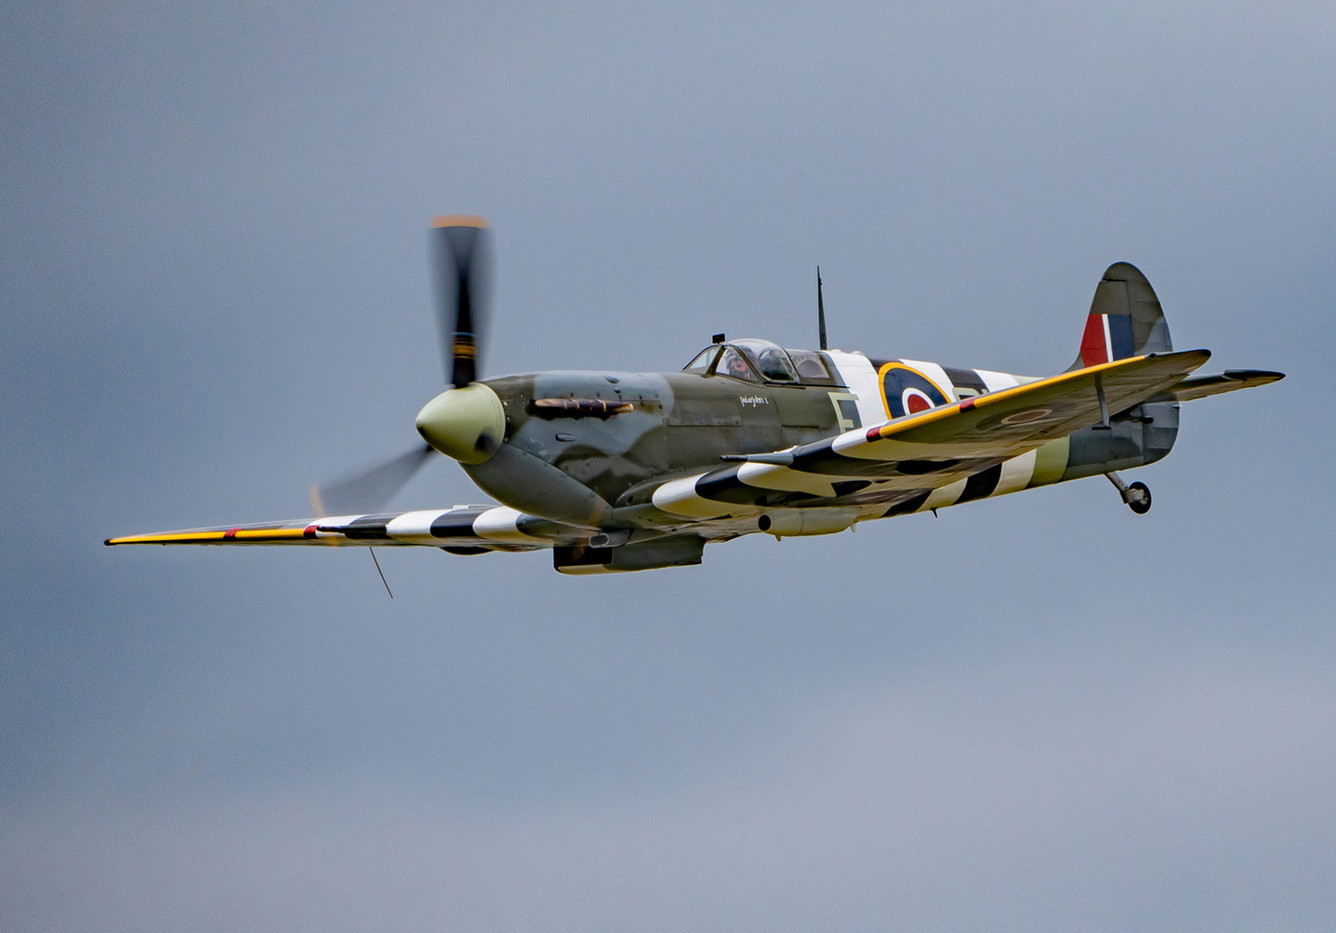 17 SPITFIRE FSH3910 by Roger Wates